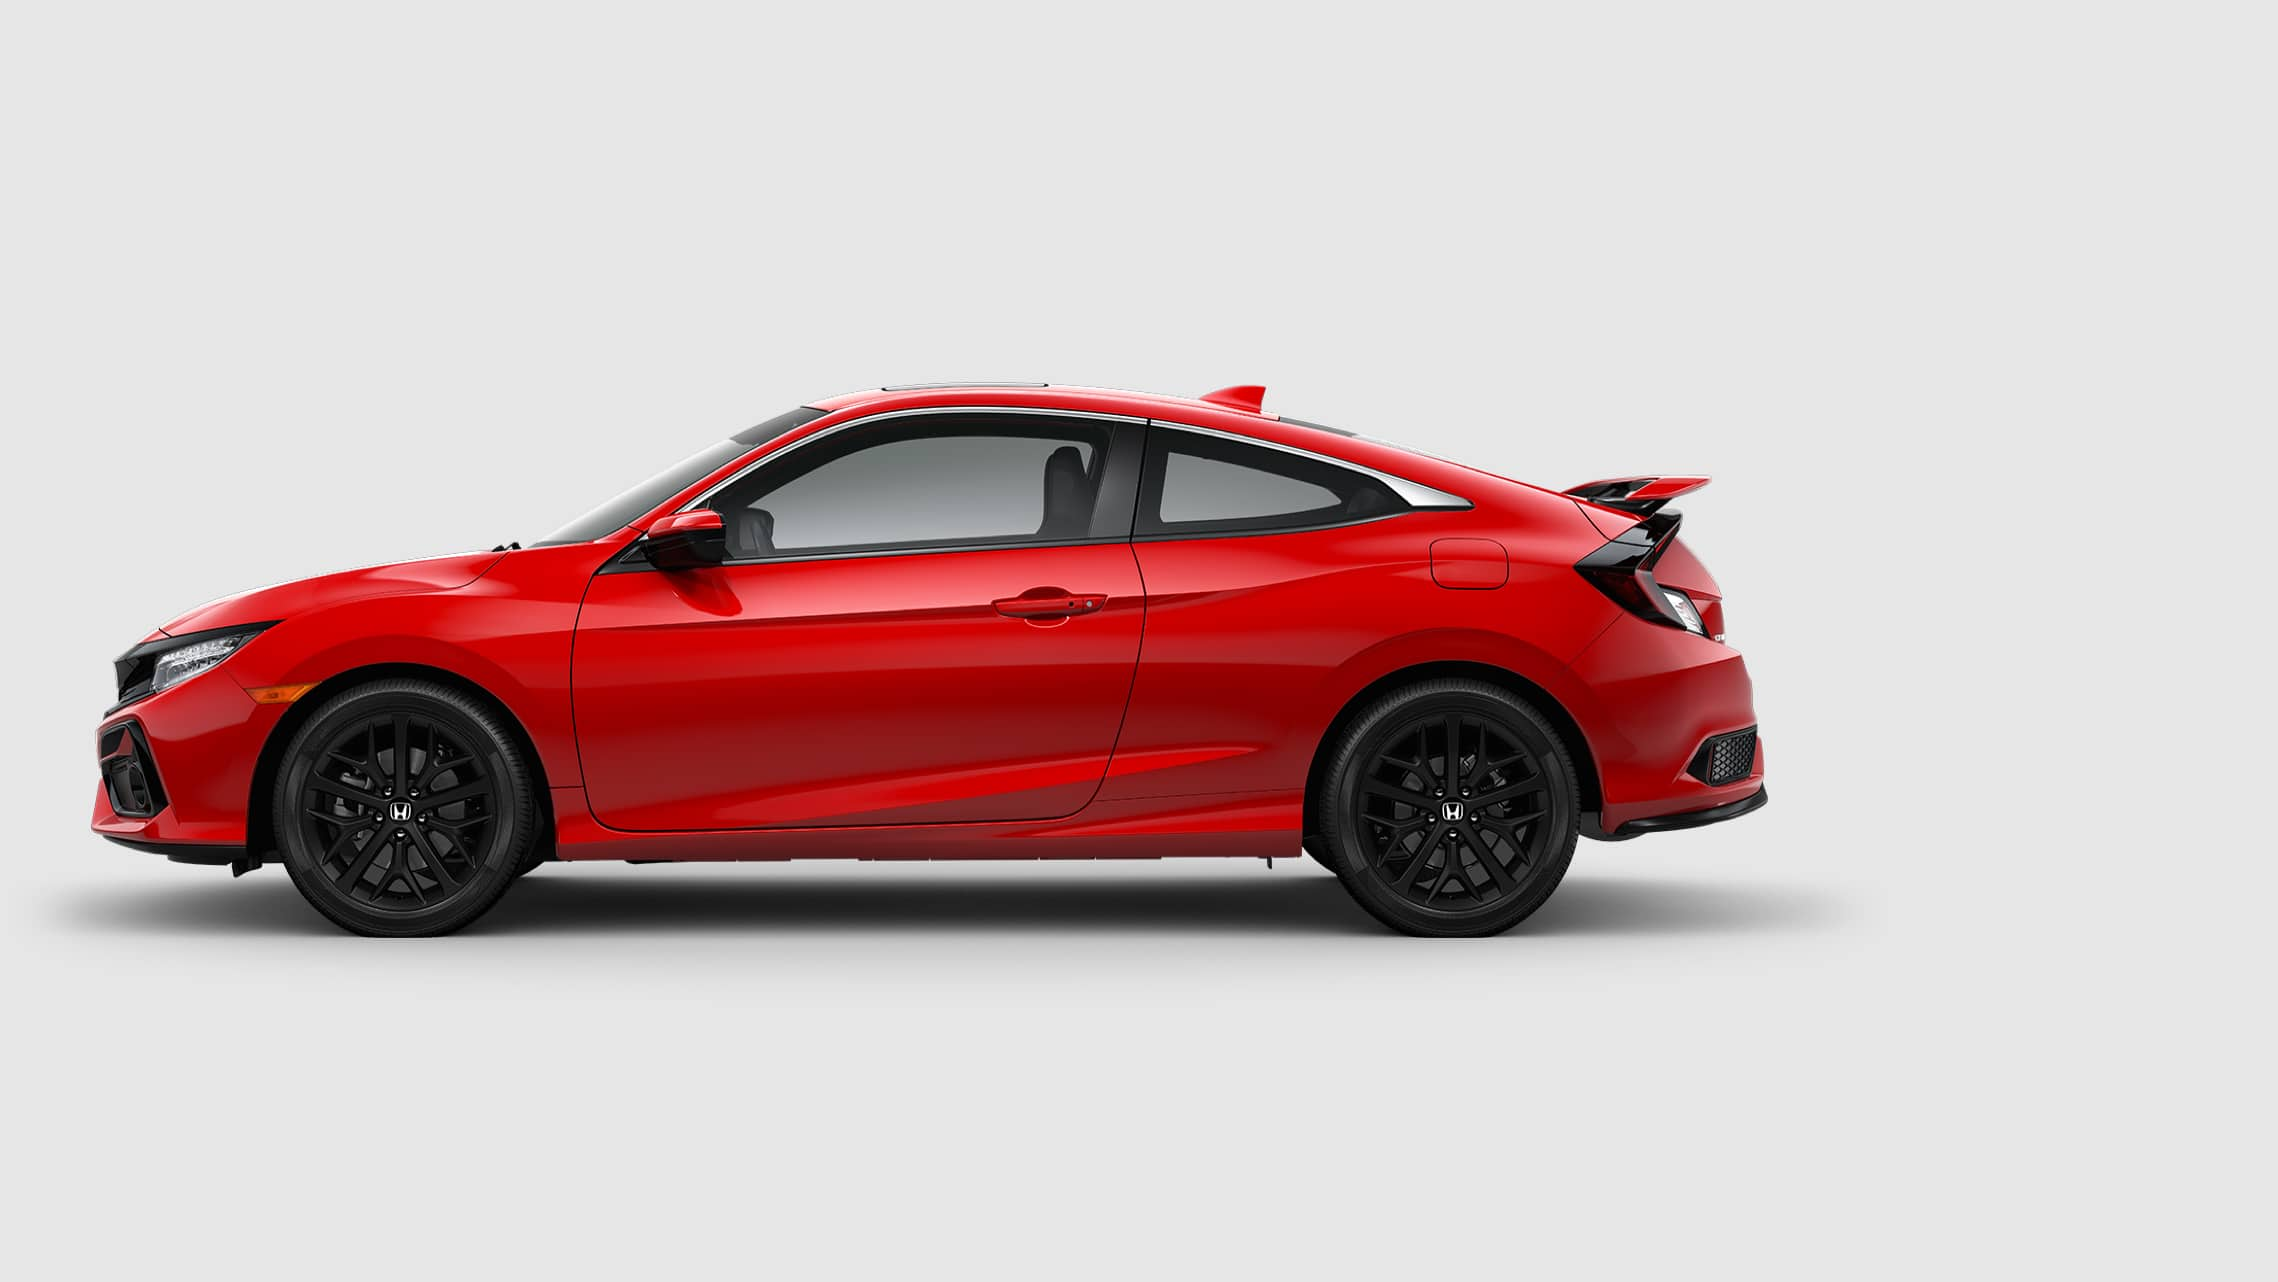 Driver's side view of 2020 Honda Civic Si Coupe in Rallye Red.